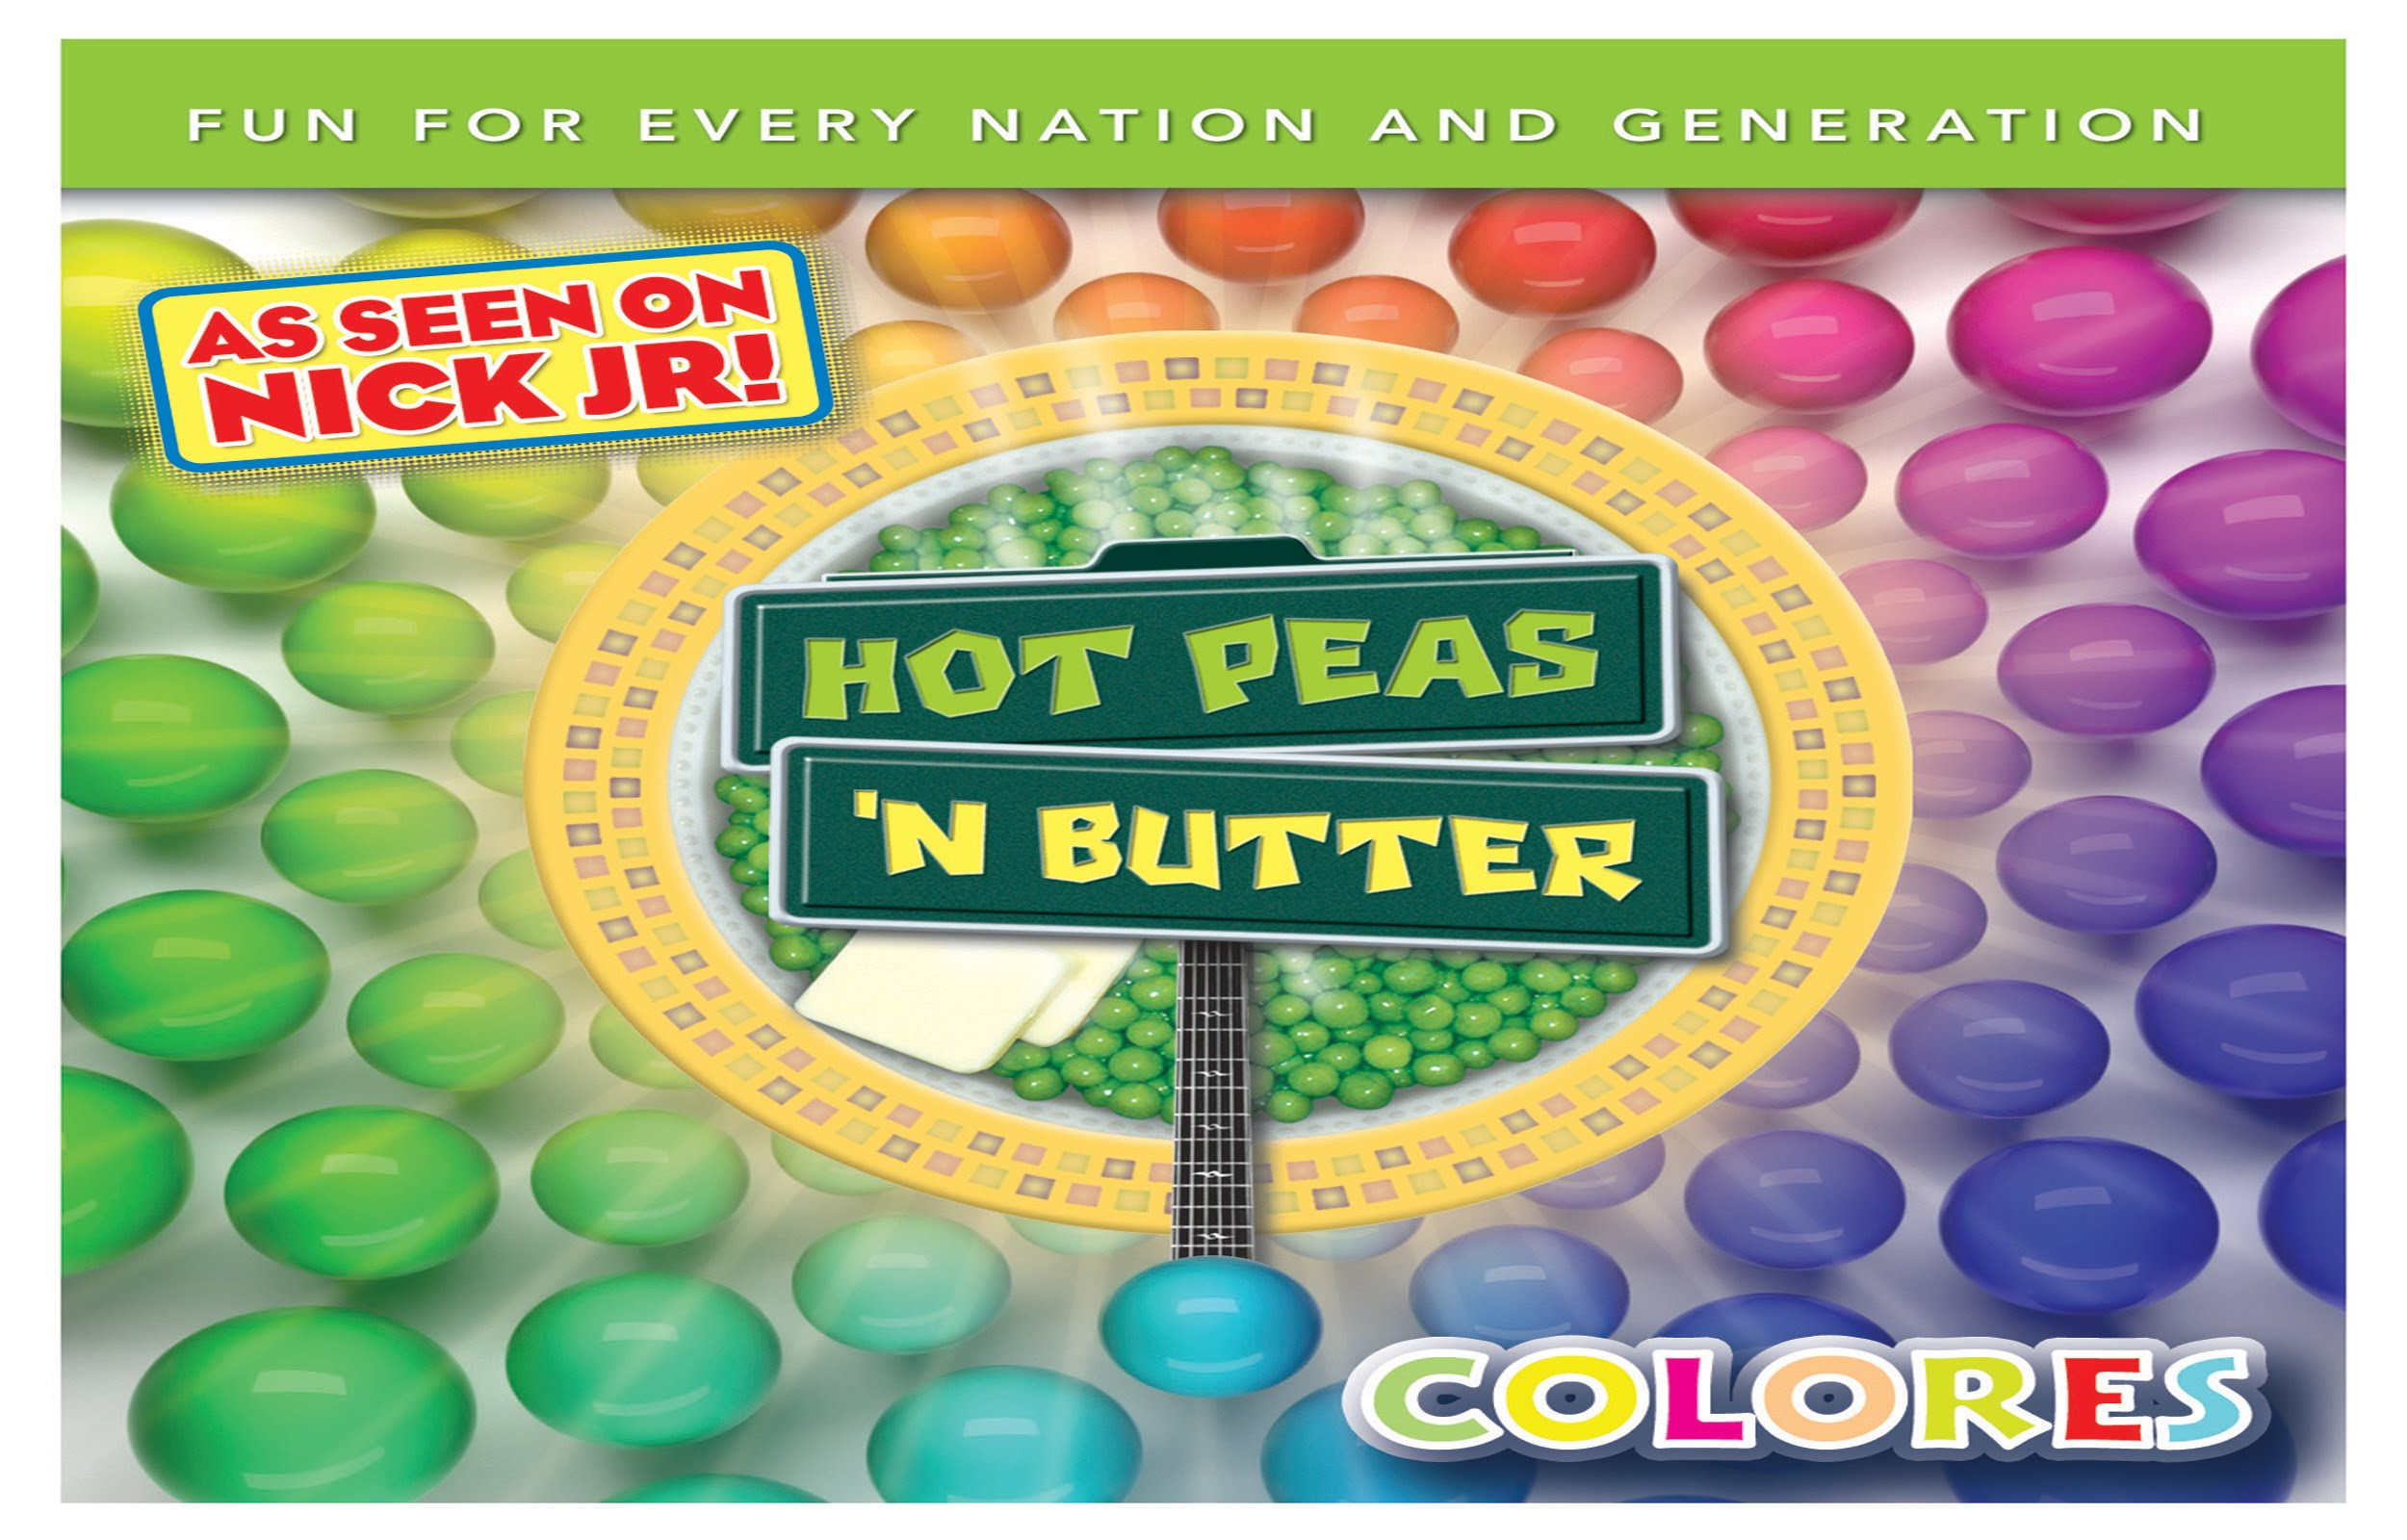 Colores | Hot Peas 'N Butter